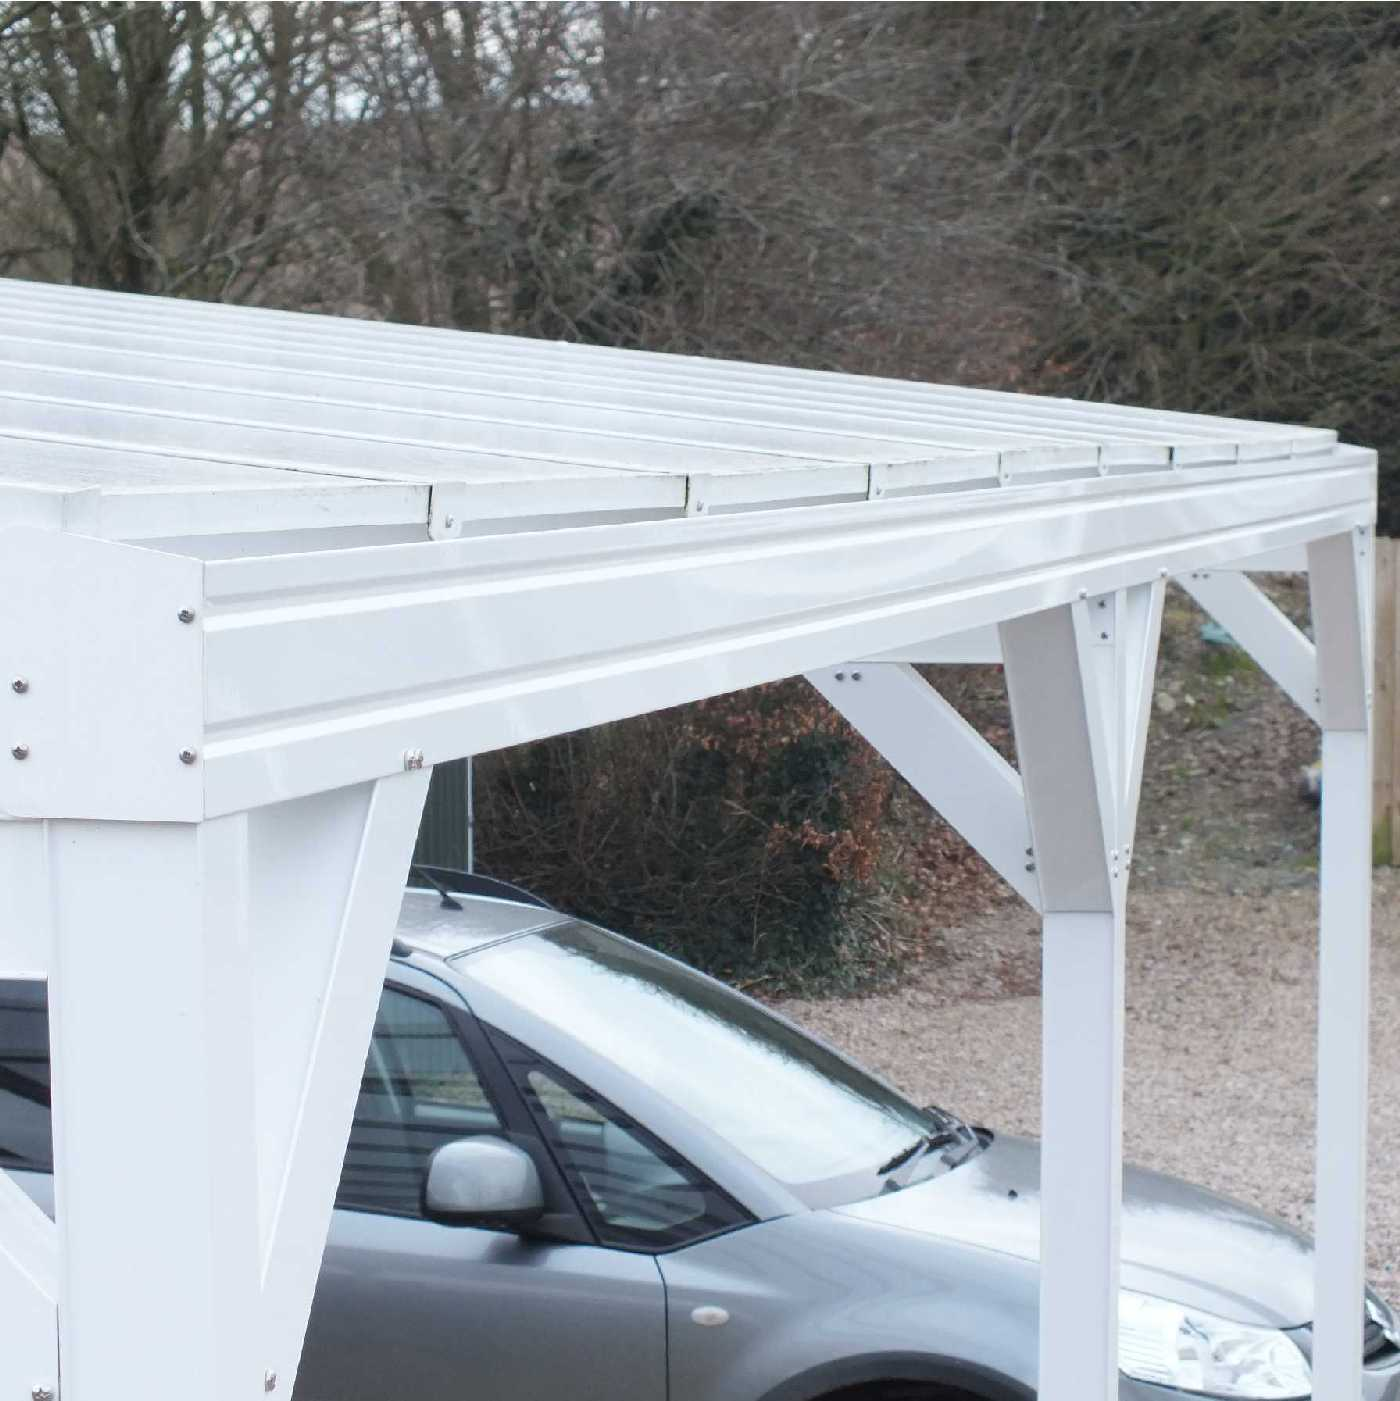 Omega Smart Free-Standing, MonoPitch Roof Canopy with 16mm Polycarbonate Glazing - 7.4m (W) x 2.0m (P), (8) Supporting Posts from Omega Build